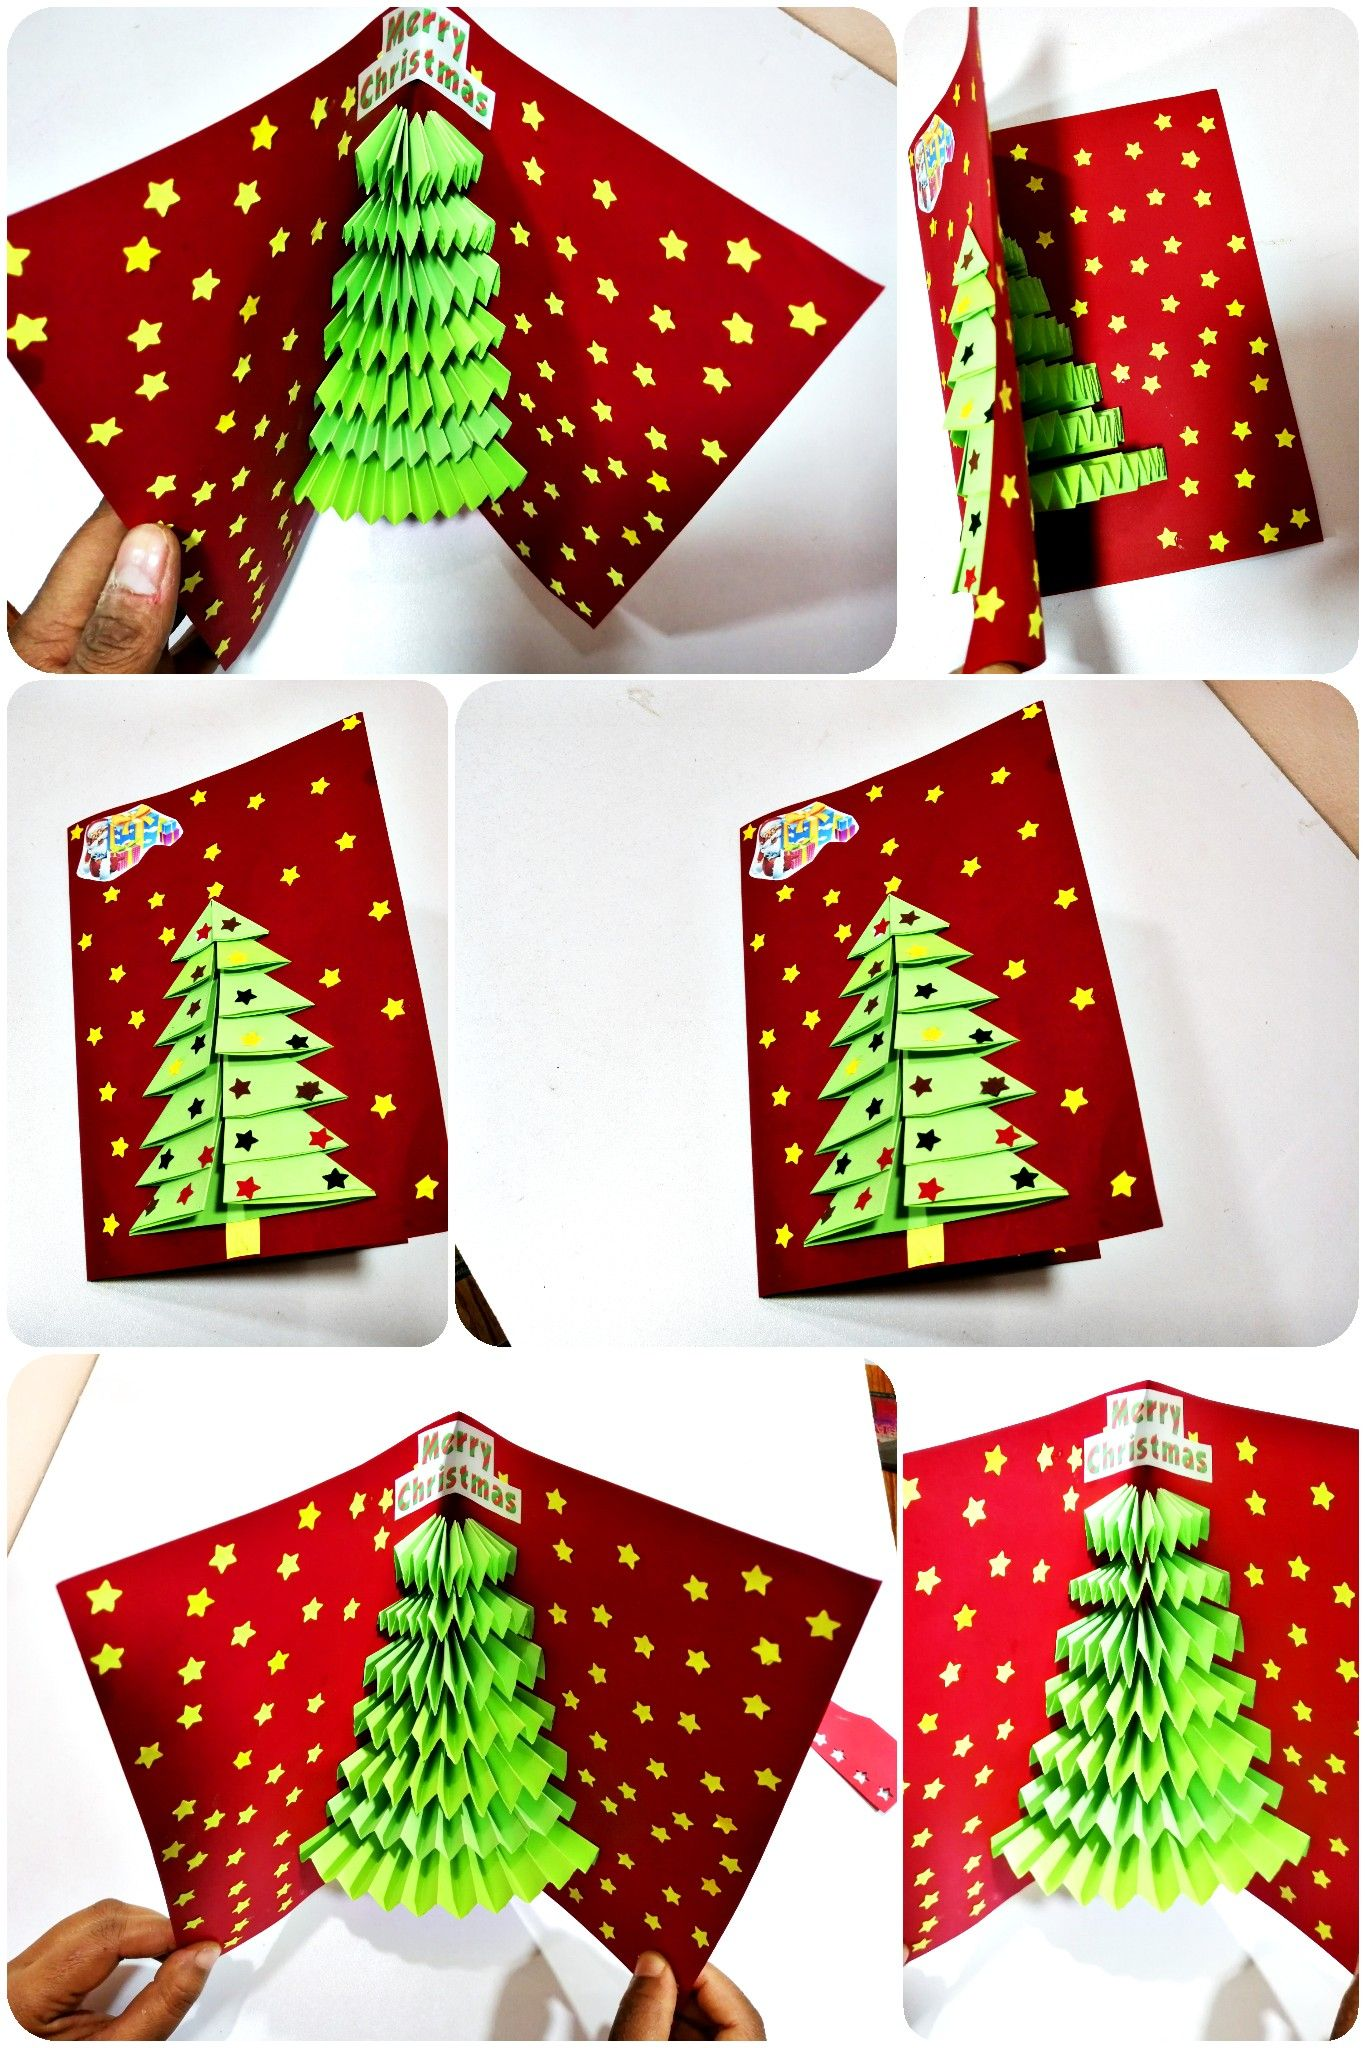 Pop Up Card Banane Ka Tarika 3d Card Diy Tutorial Christmas